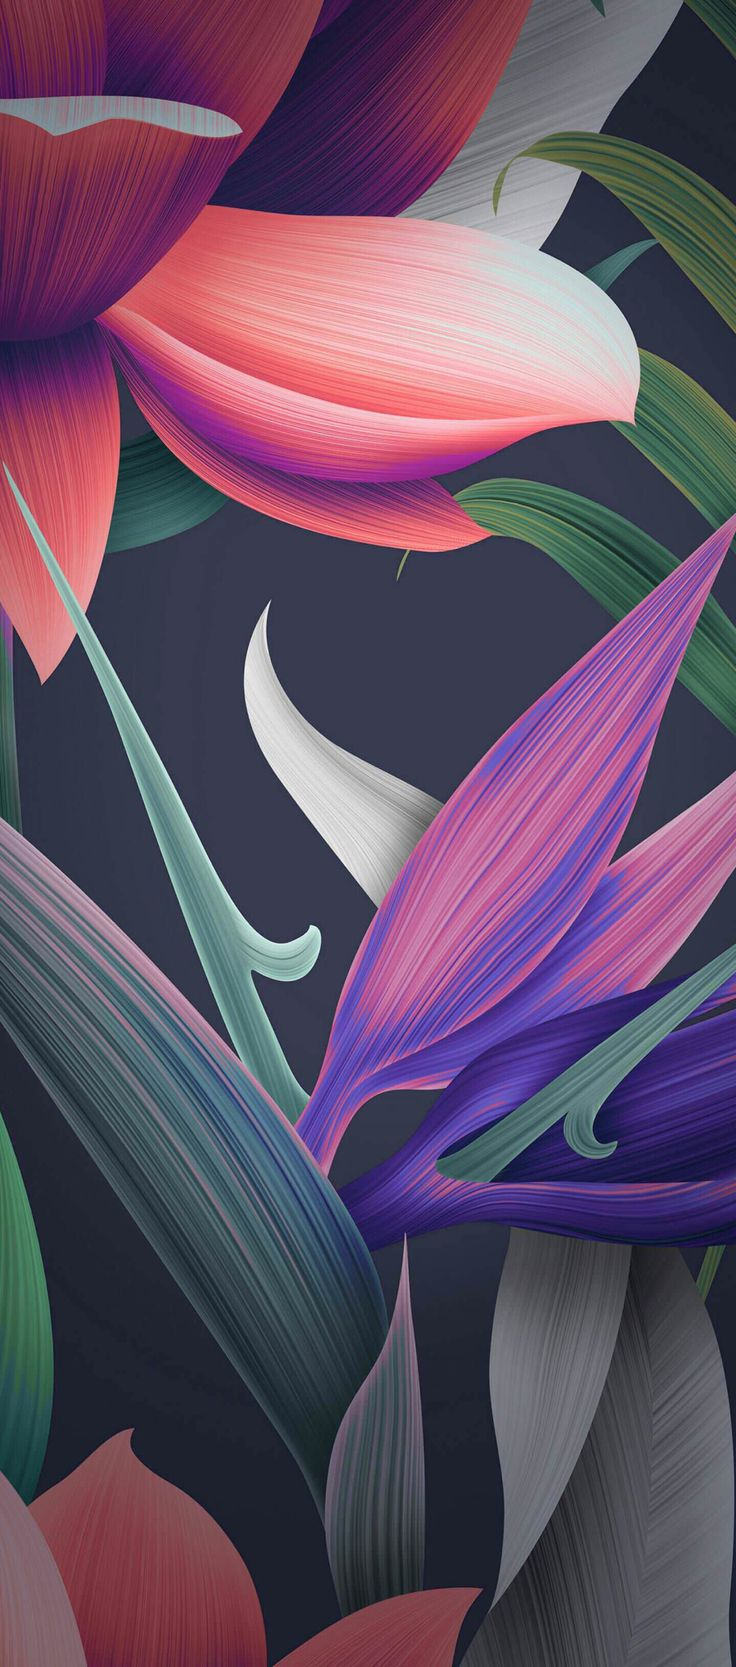 Floral, black, purple, orange, pink, wallpaper, clean, galaxy, colour, abstract, digital art, s8, walls, Samsung, galaxy s8, note